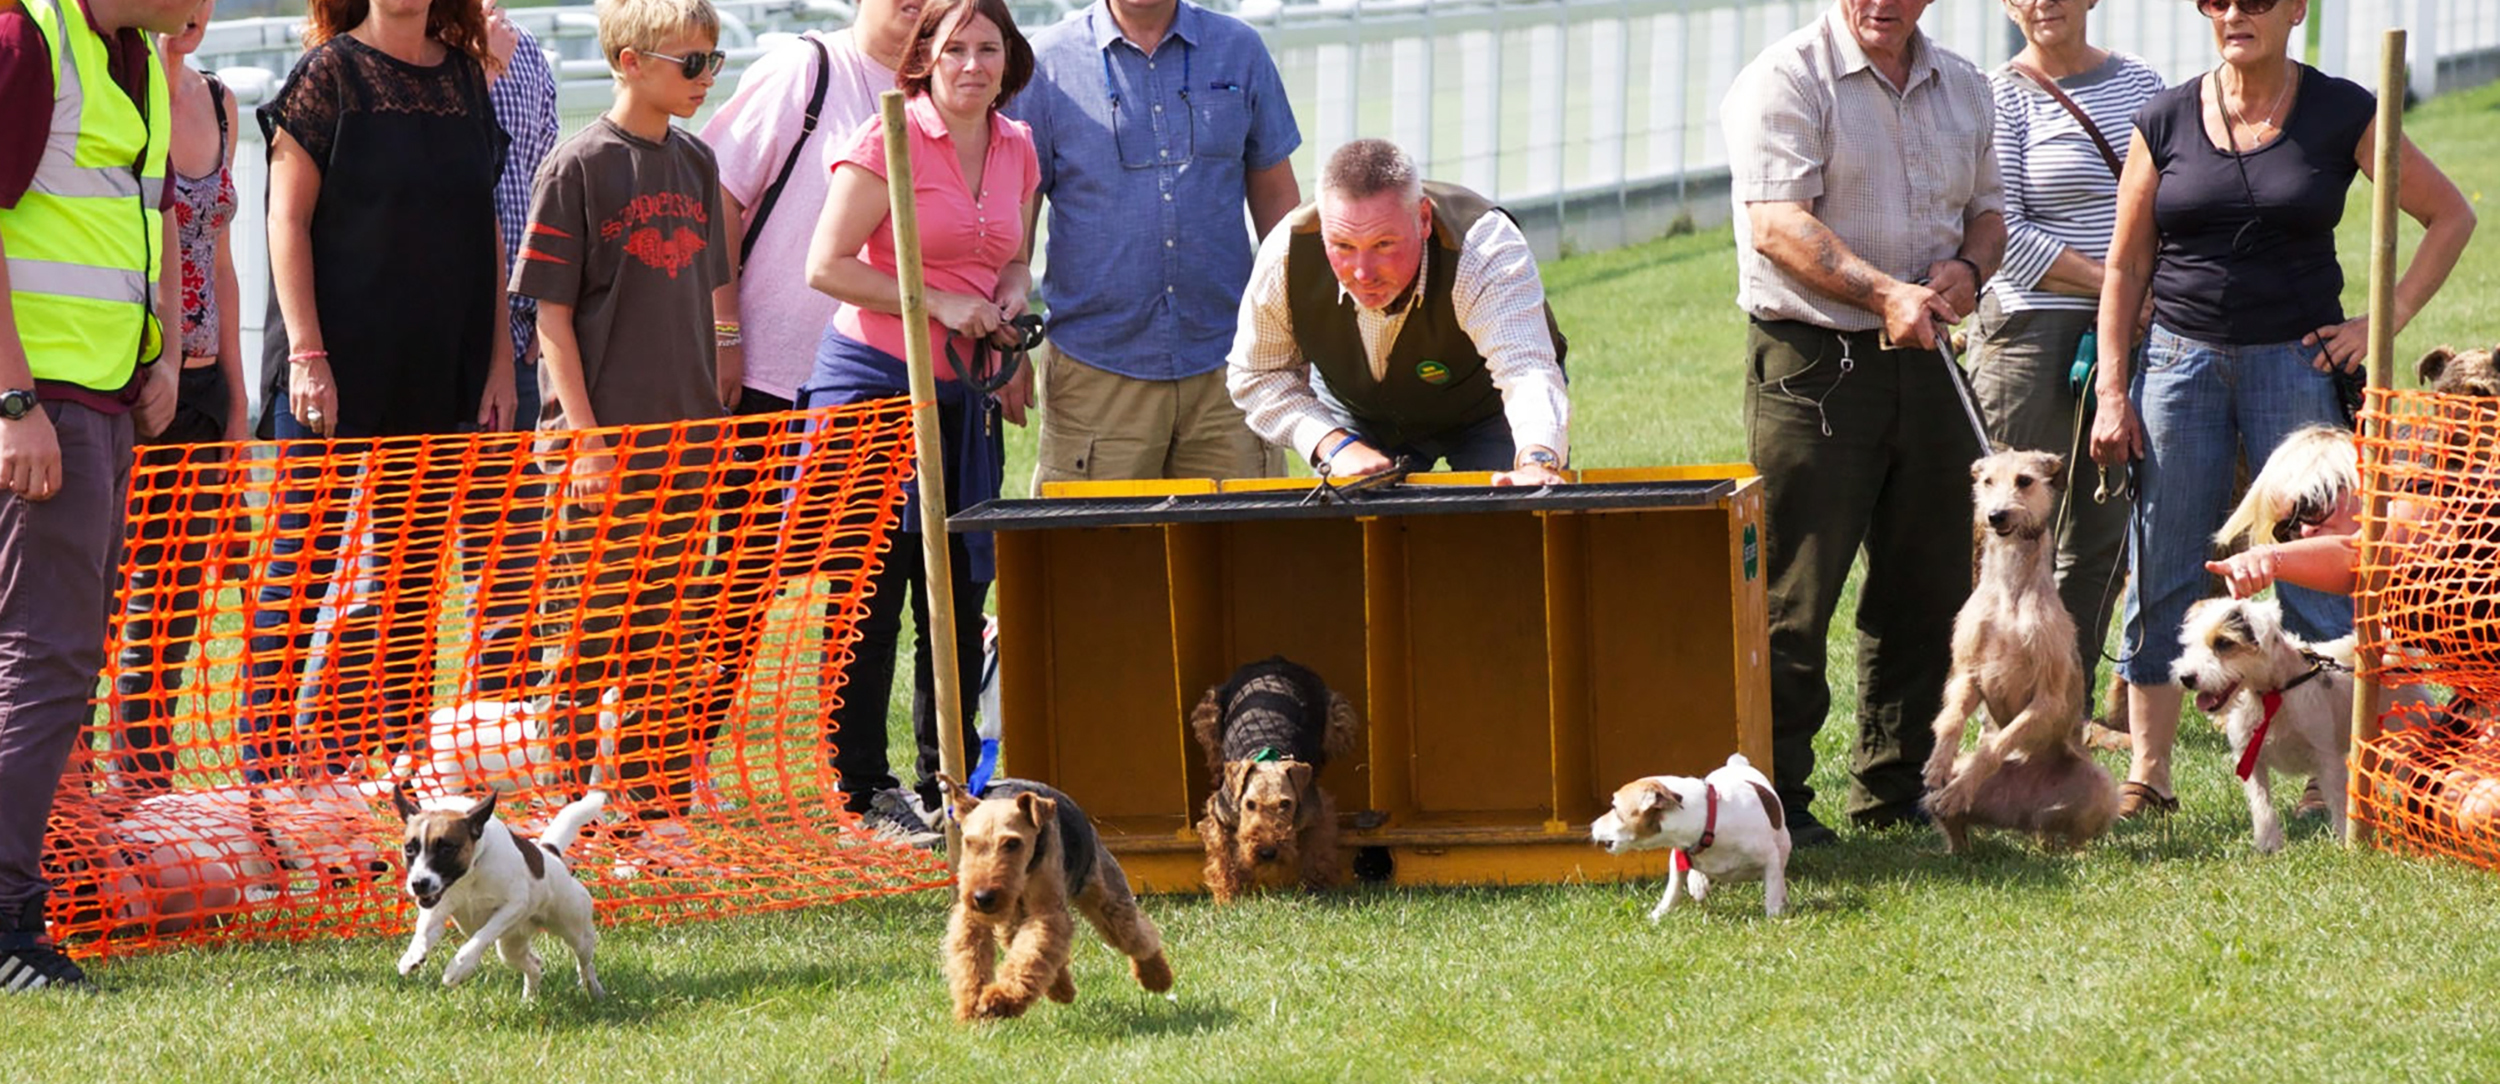 Dogs starting race